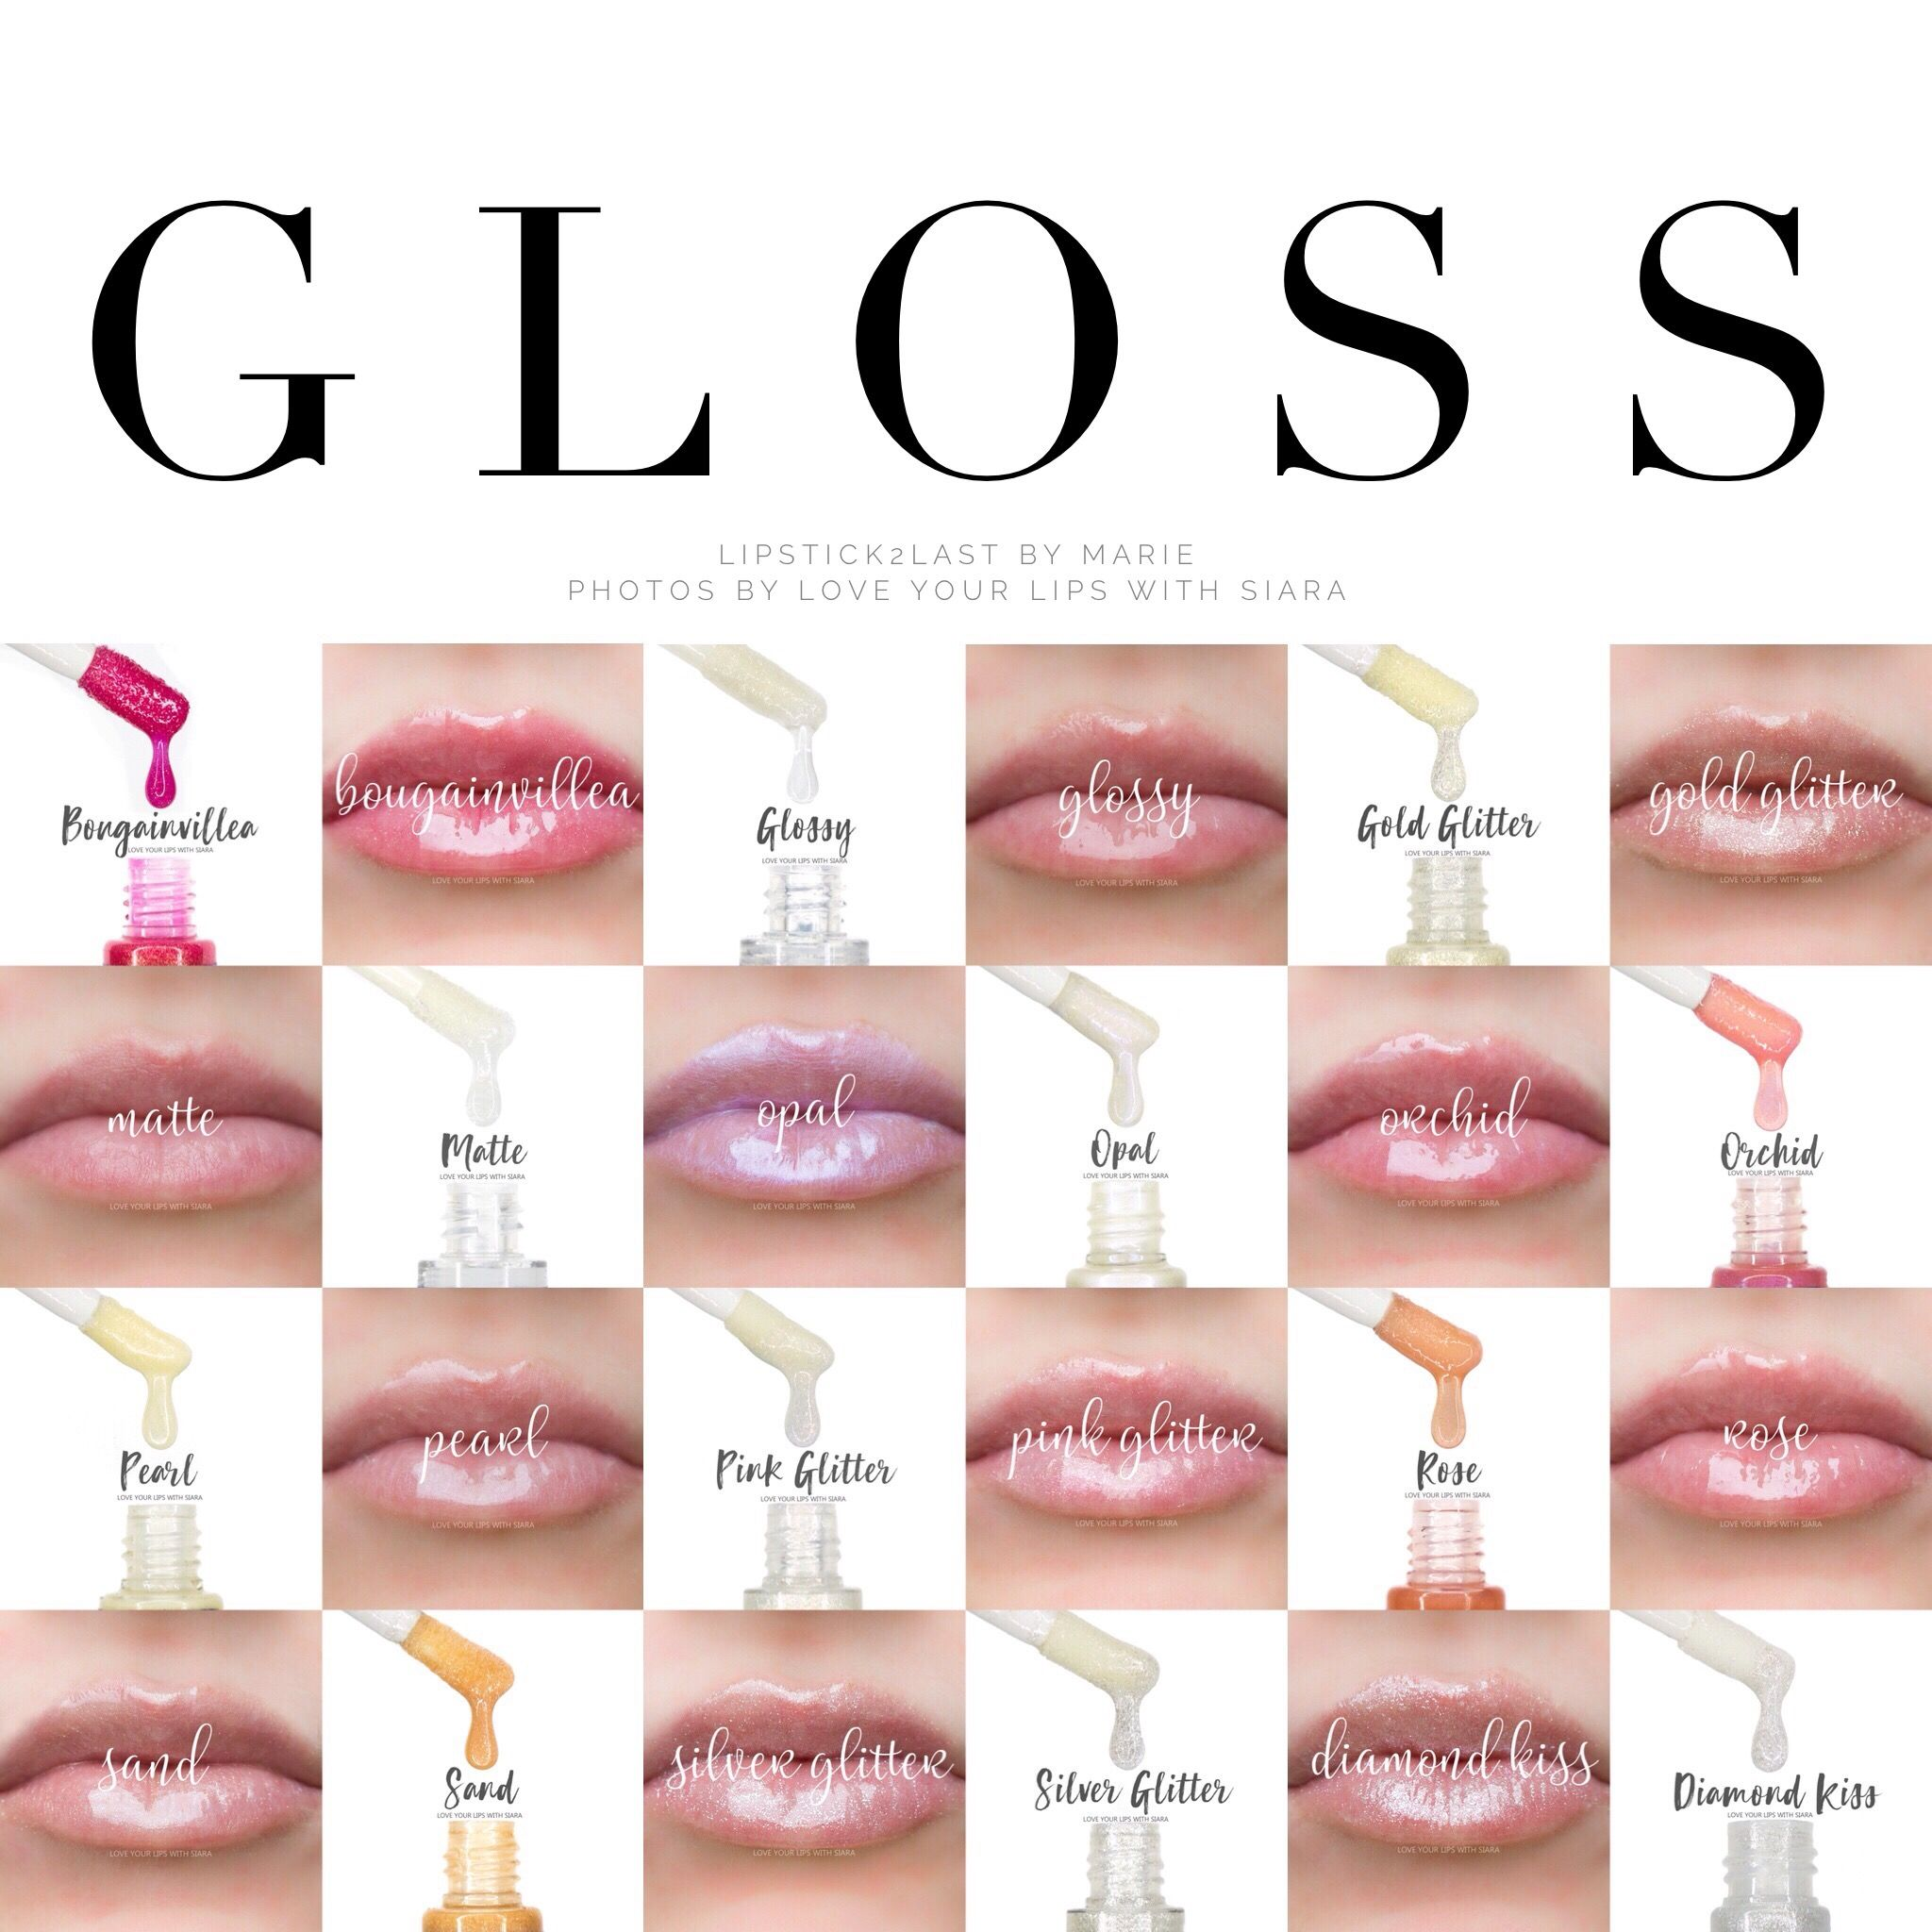 Lipsense Gloss Options To Seal In Color And Hydrate Lips With